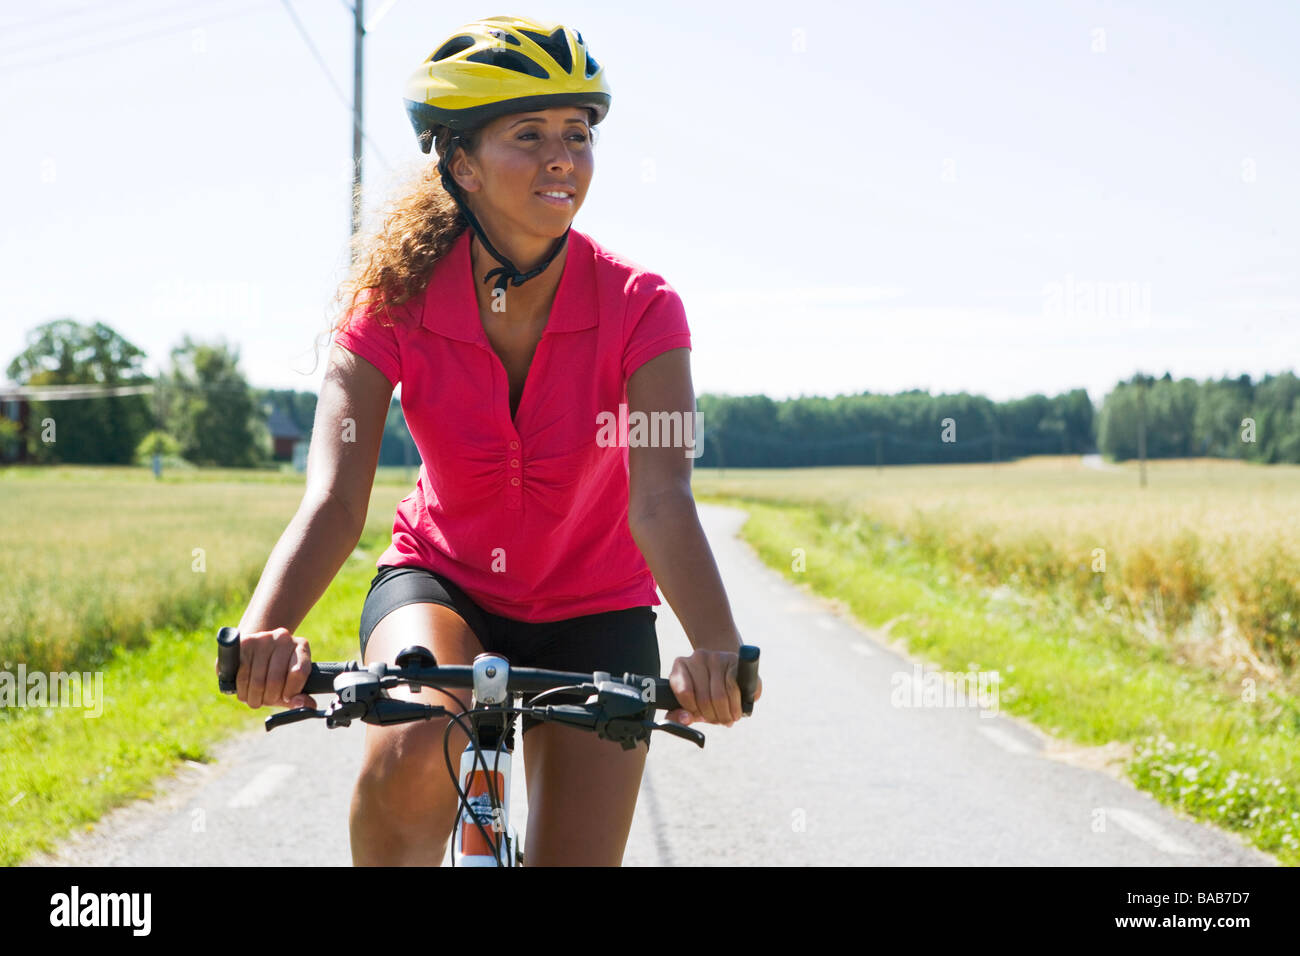 A woman riding a bike in the countryside, Sweden. - Stock Image